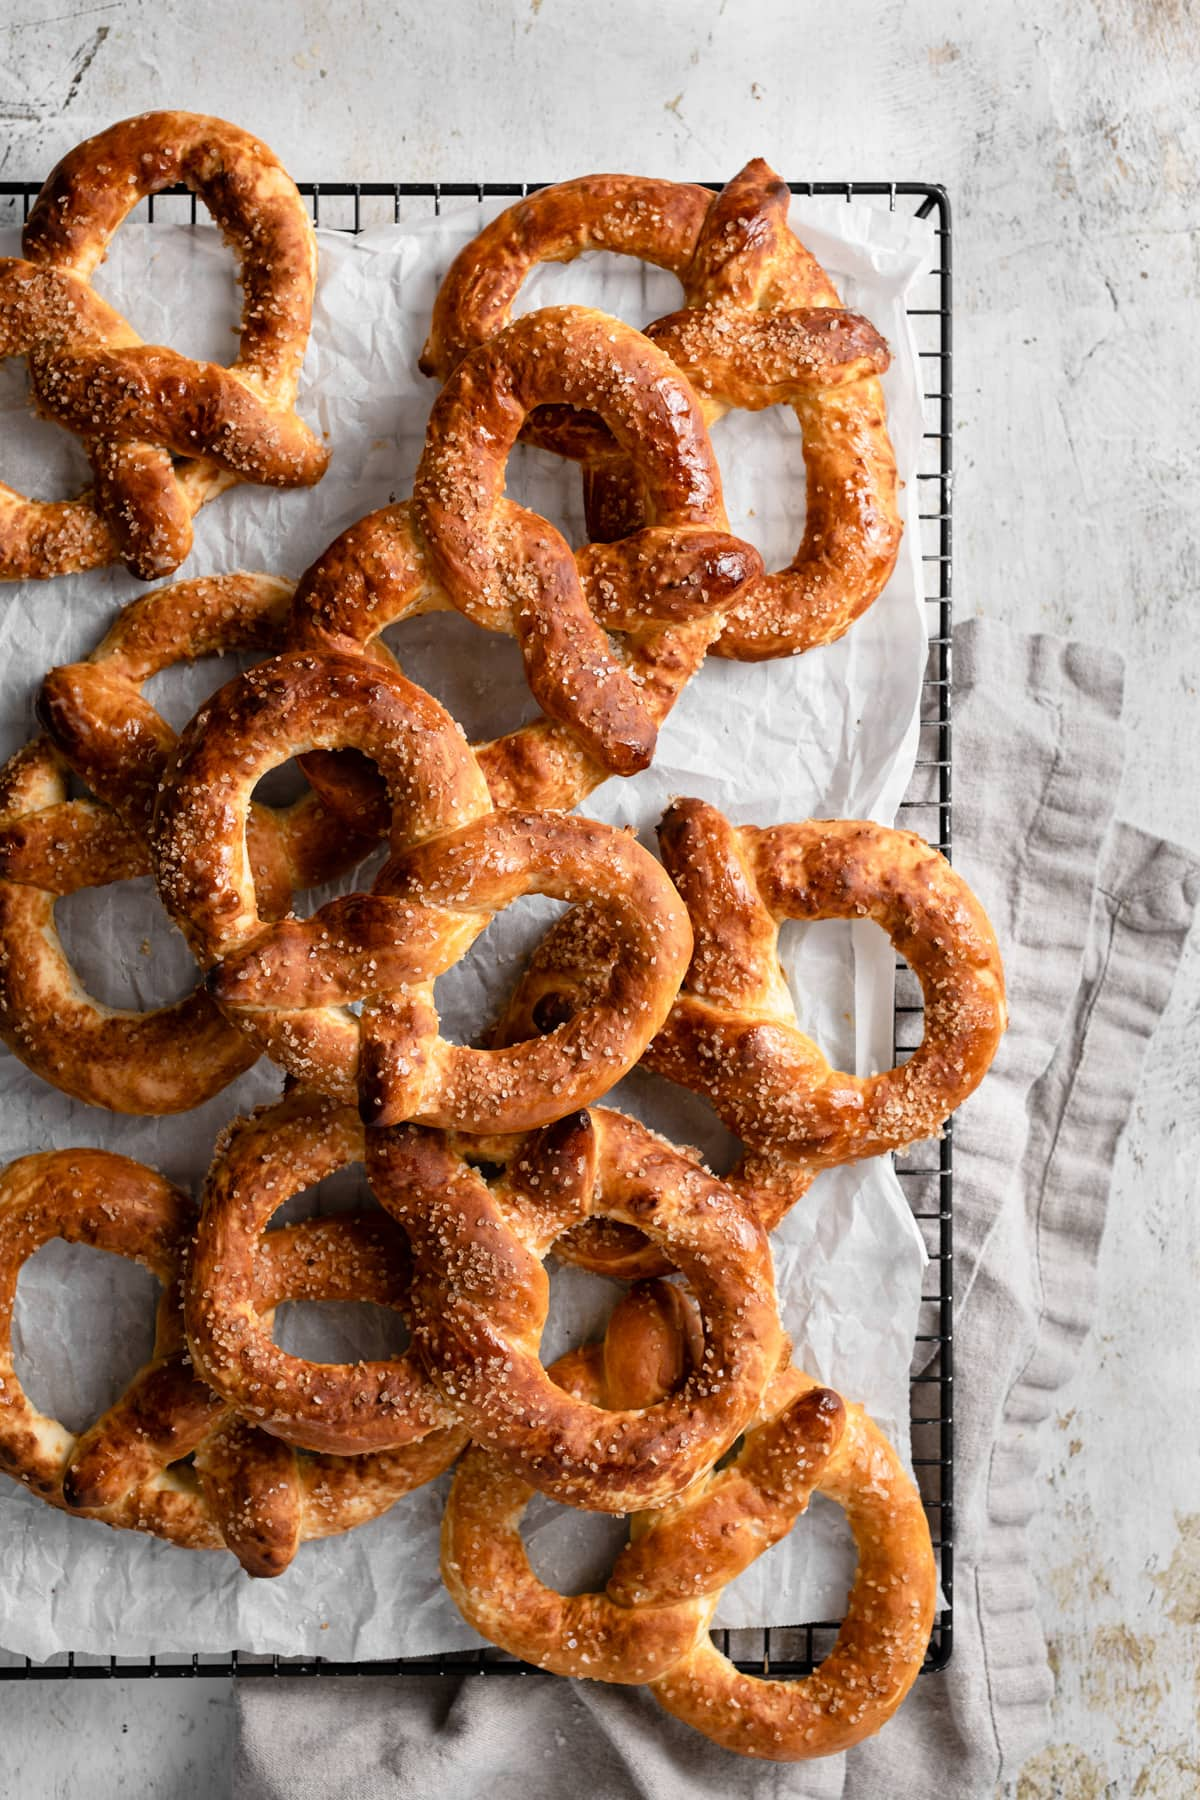 Pretzels on cooling rack.